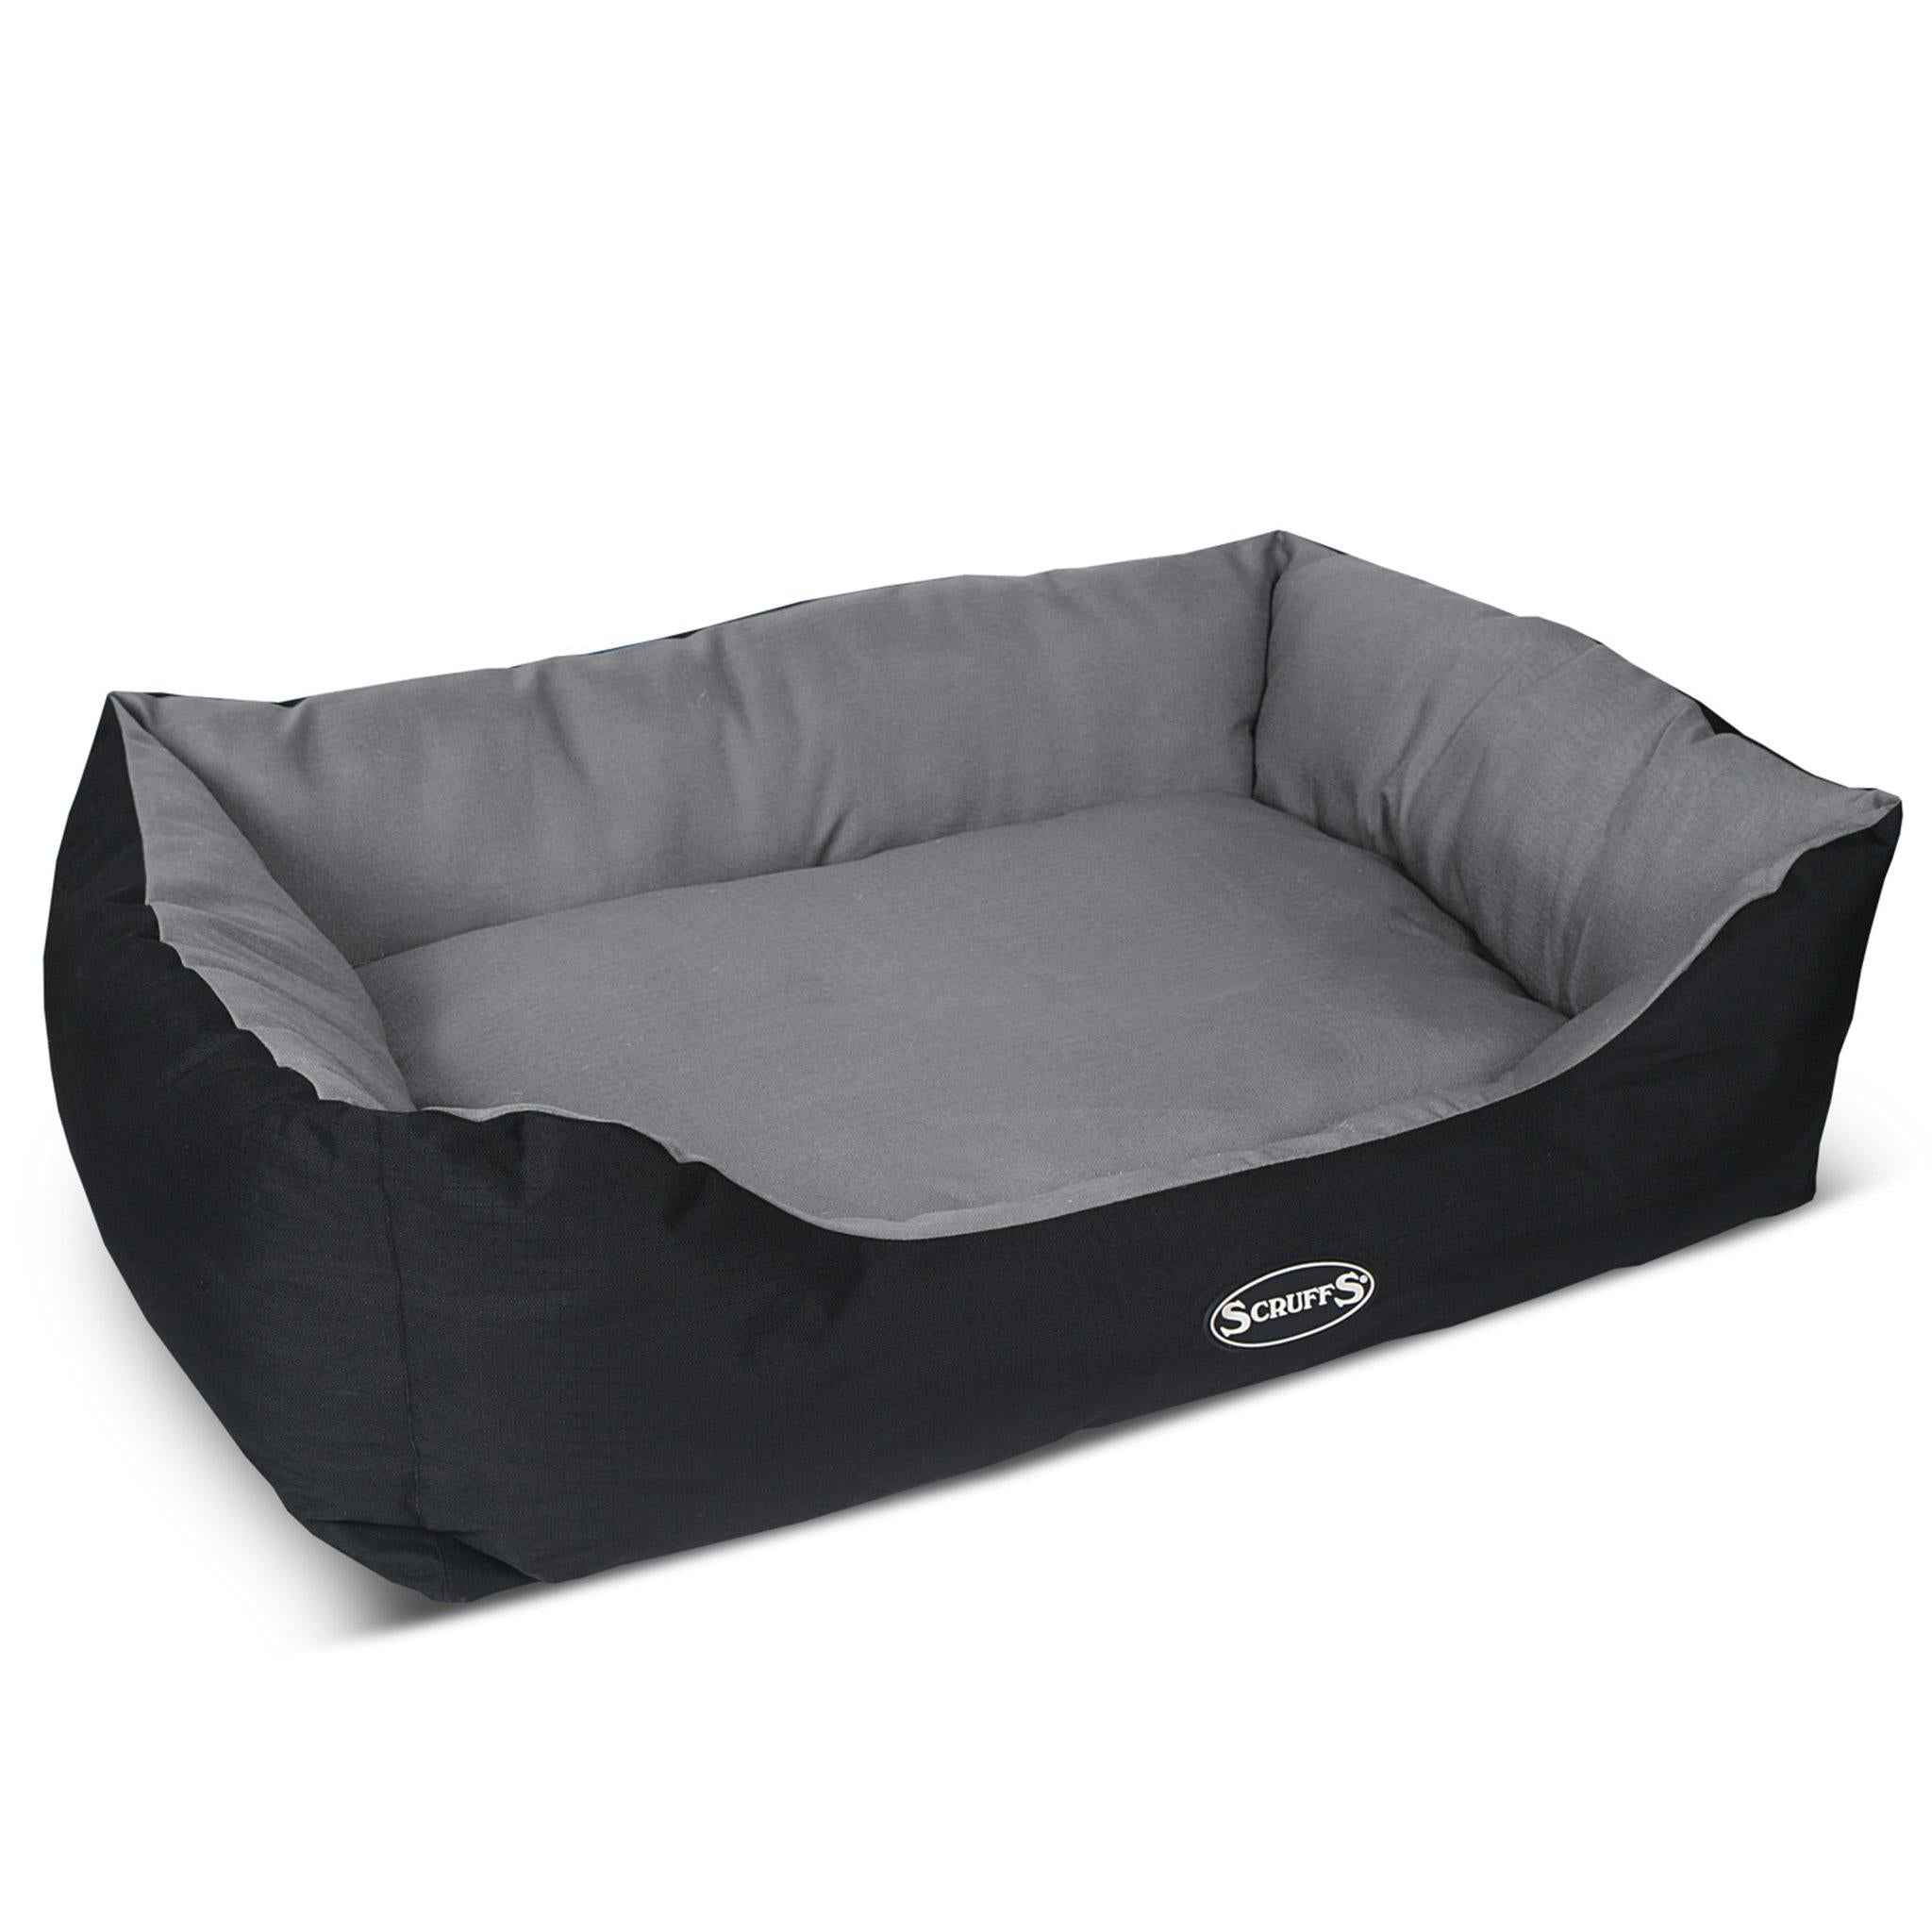 Expedition Box Bed - comfypet